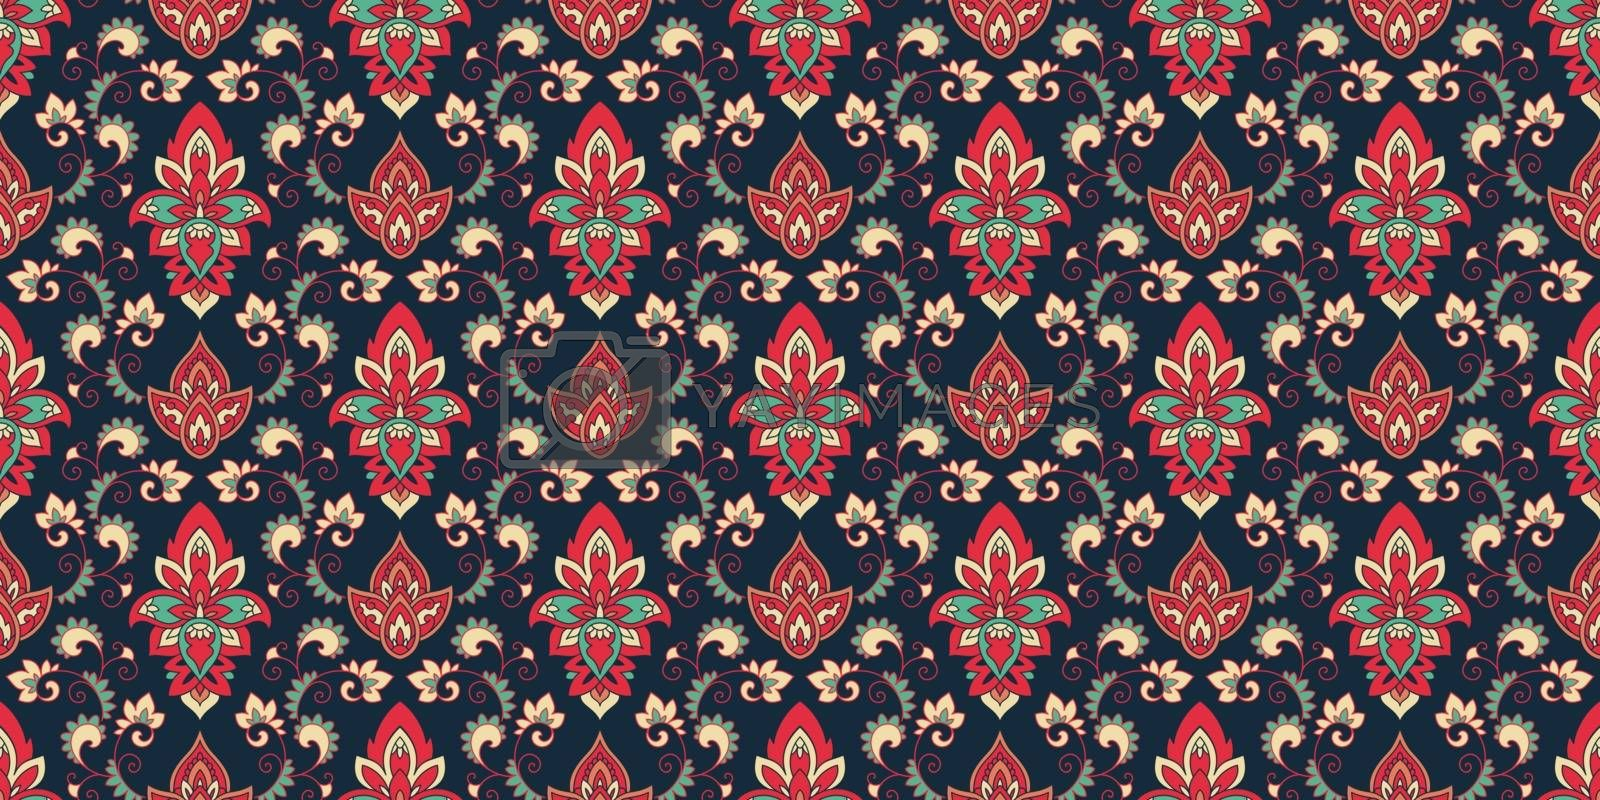 Royalty free image of Seamless pattern based on traditional Asian elements Paisley. Boho vintage style vector background. Silk neck scarf or kerchief pattern design style, best motive for print on fabric or papper. by SanyaL